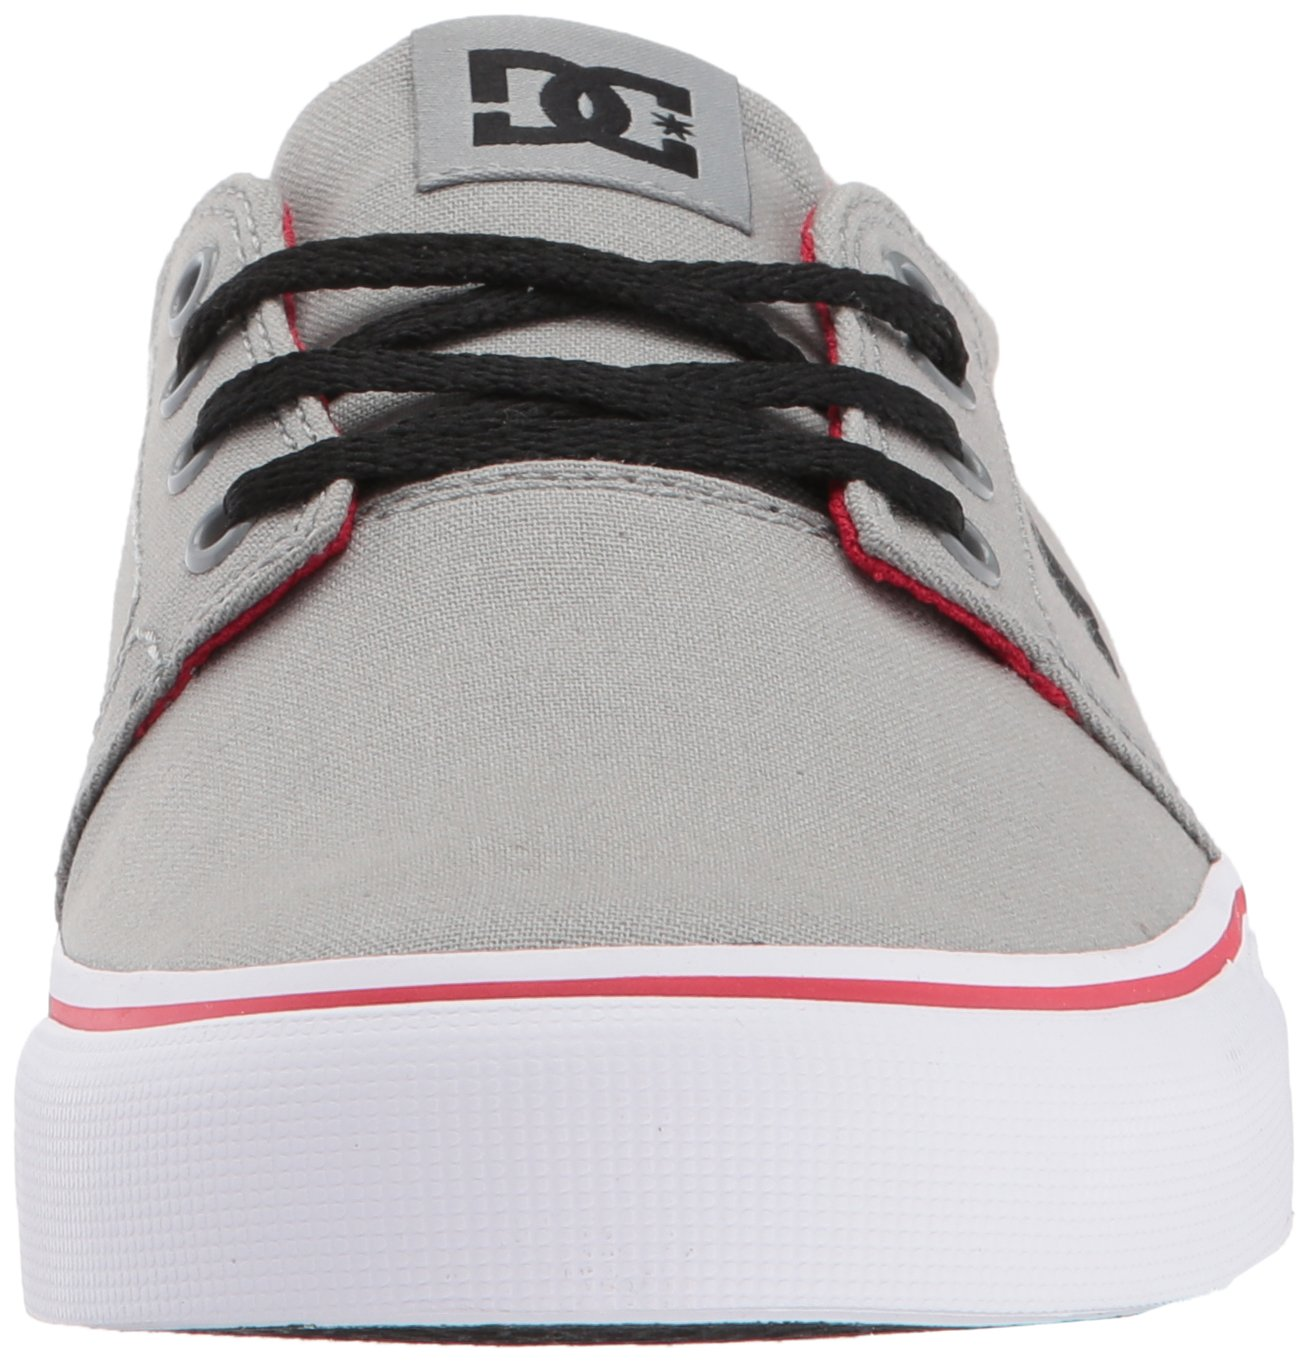 DC Men's Trase TX Unisex Skate Shoe B06Y5M24Z8 12 D D US|Grey/Red